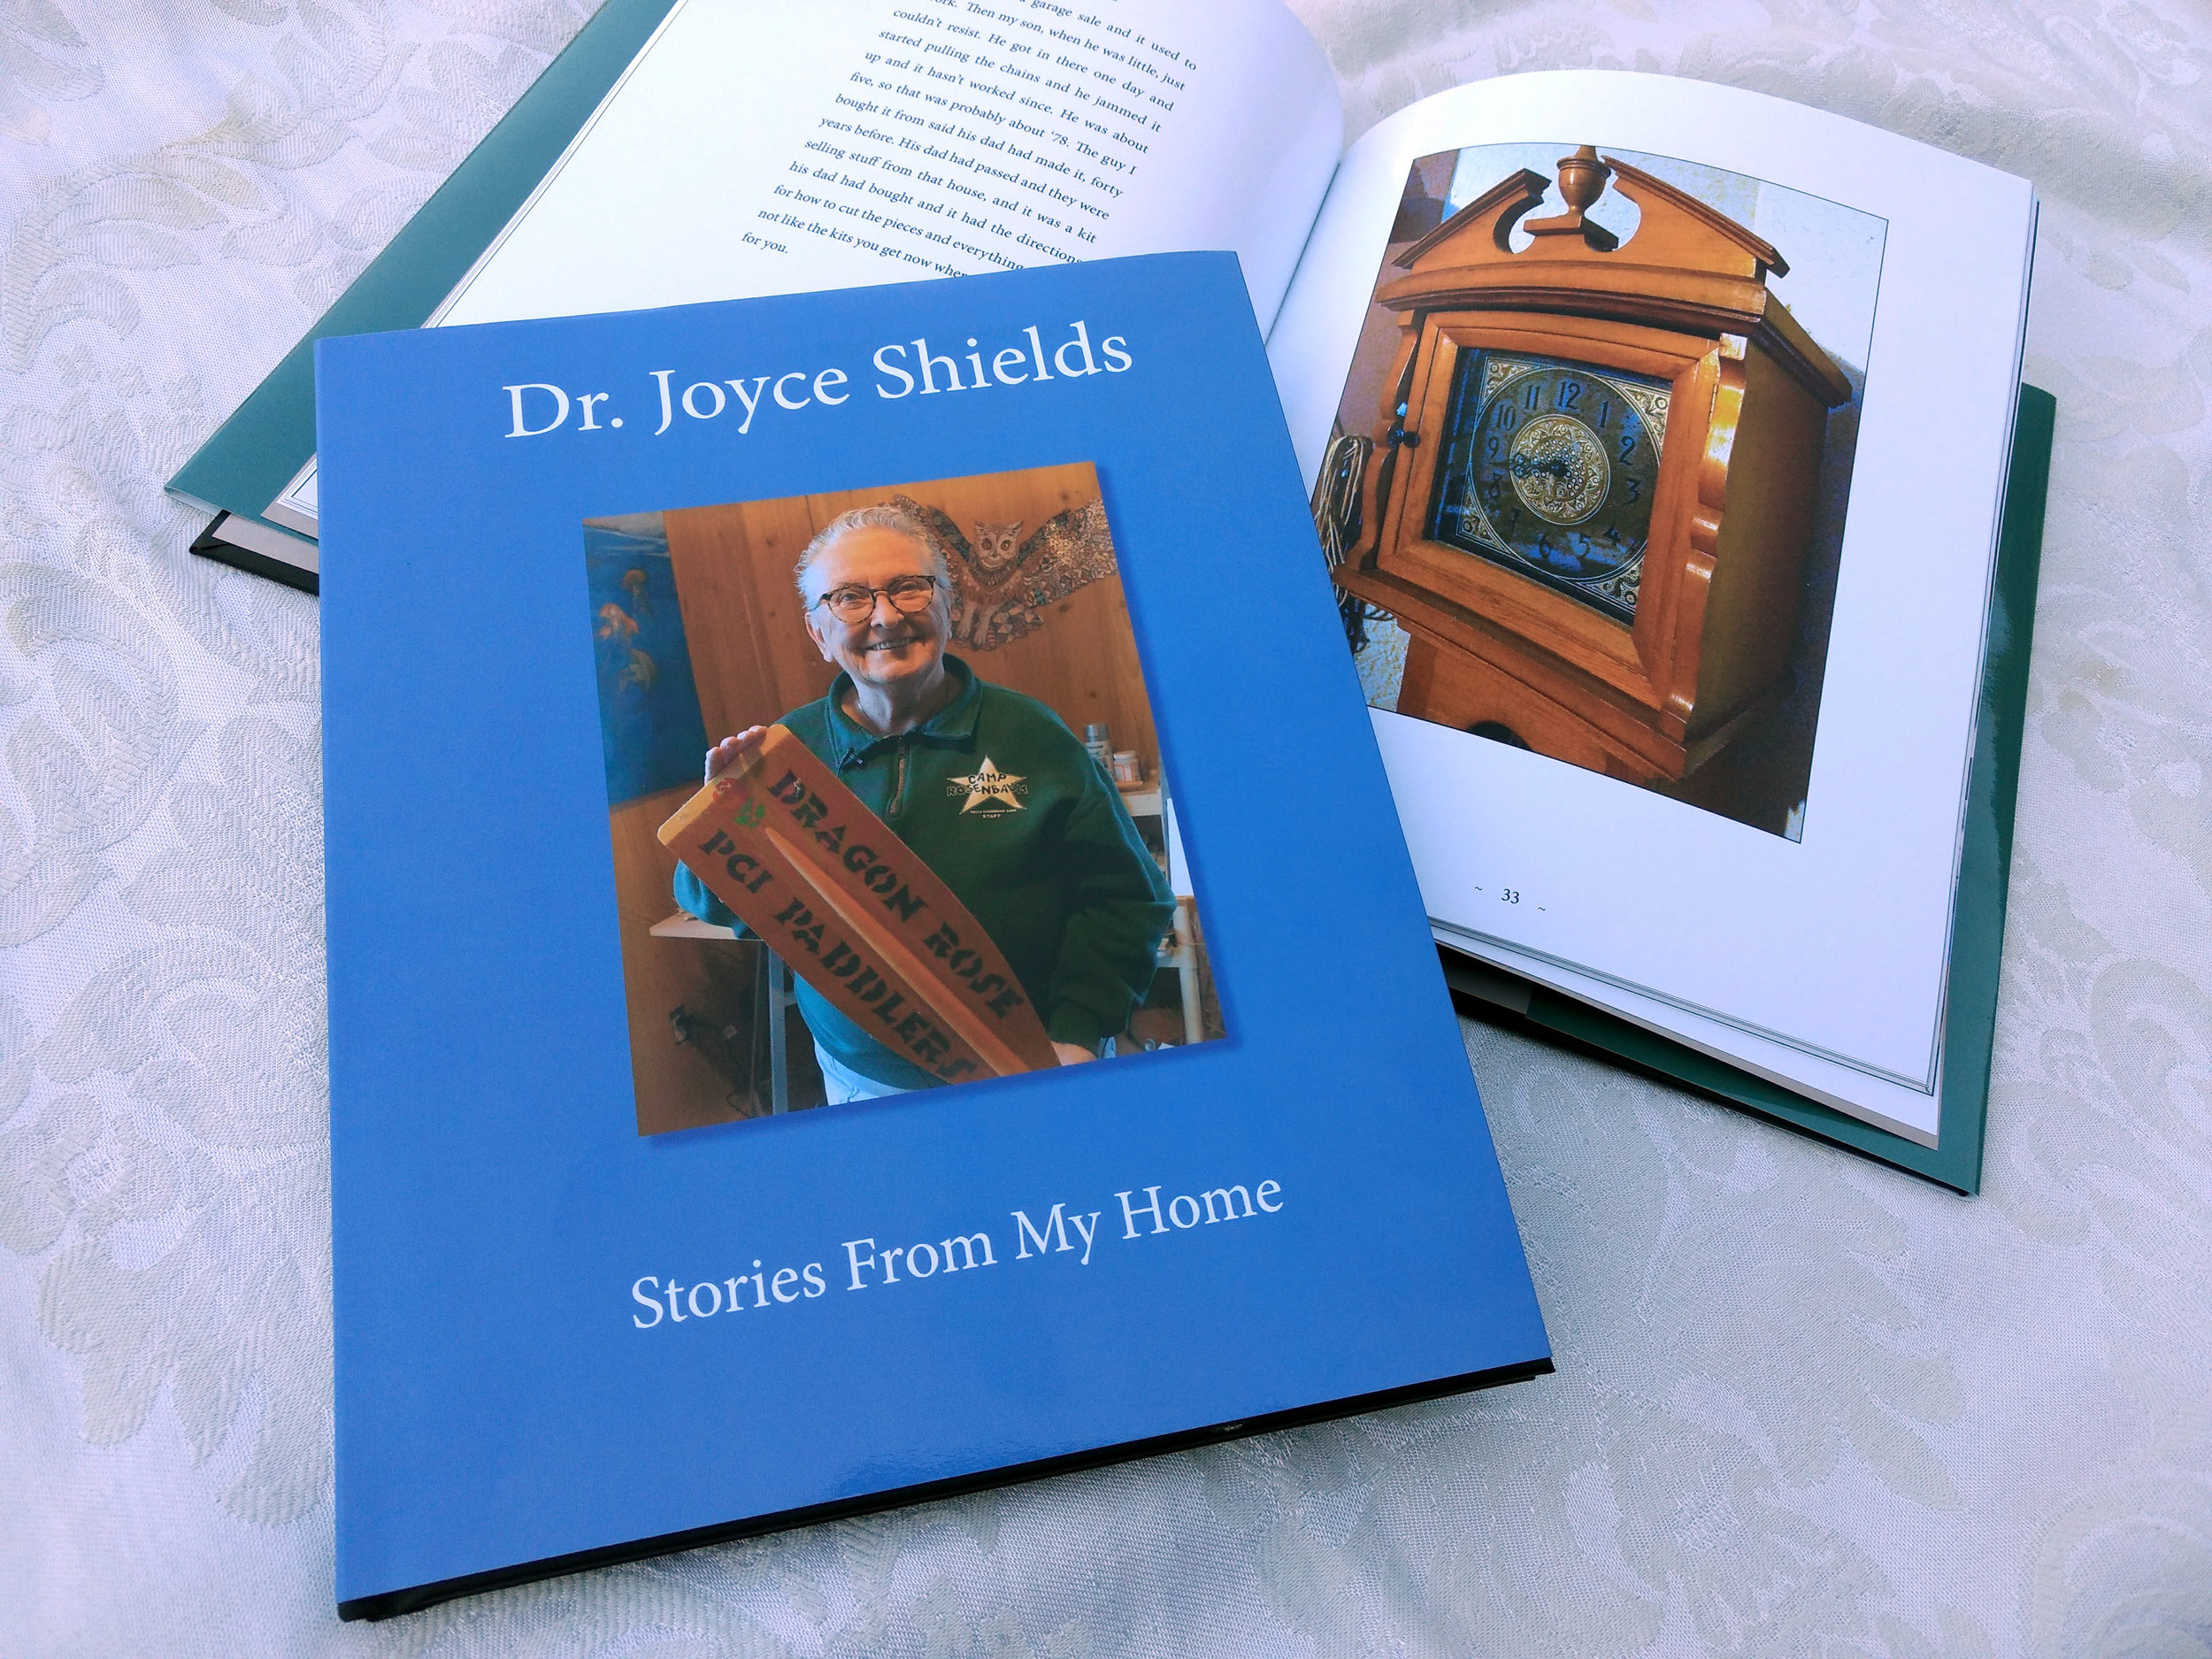 Dr. Joyce Shields   We were honored to have the opportunity to interview Dr. Shields as she walked us through her home of many years describing the objects it contained and the stories they recalled. This 70 page interview-based book contains beautiful color illustrations on every other page, and Joyce's wonderful voice throughout.